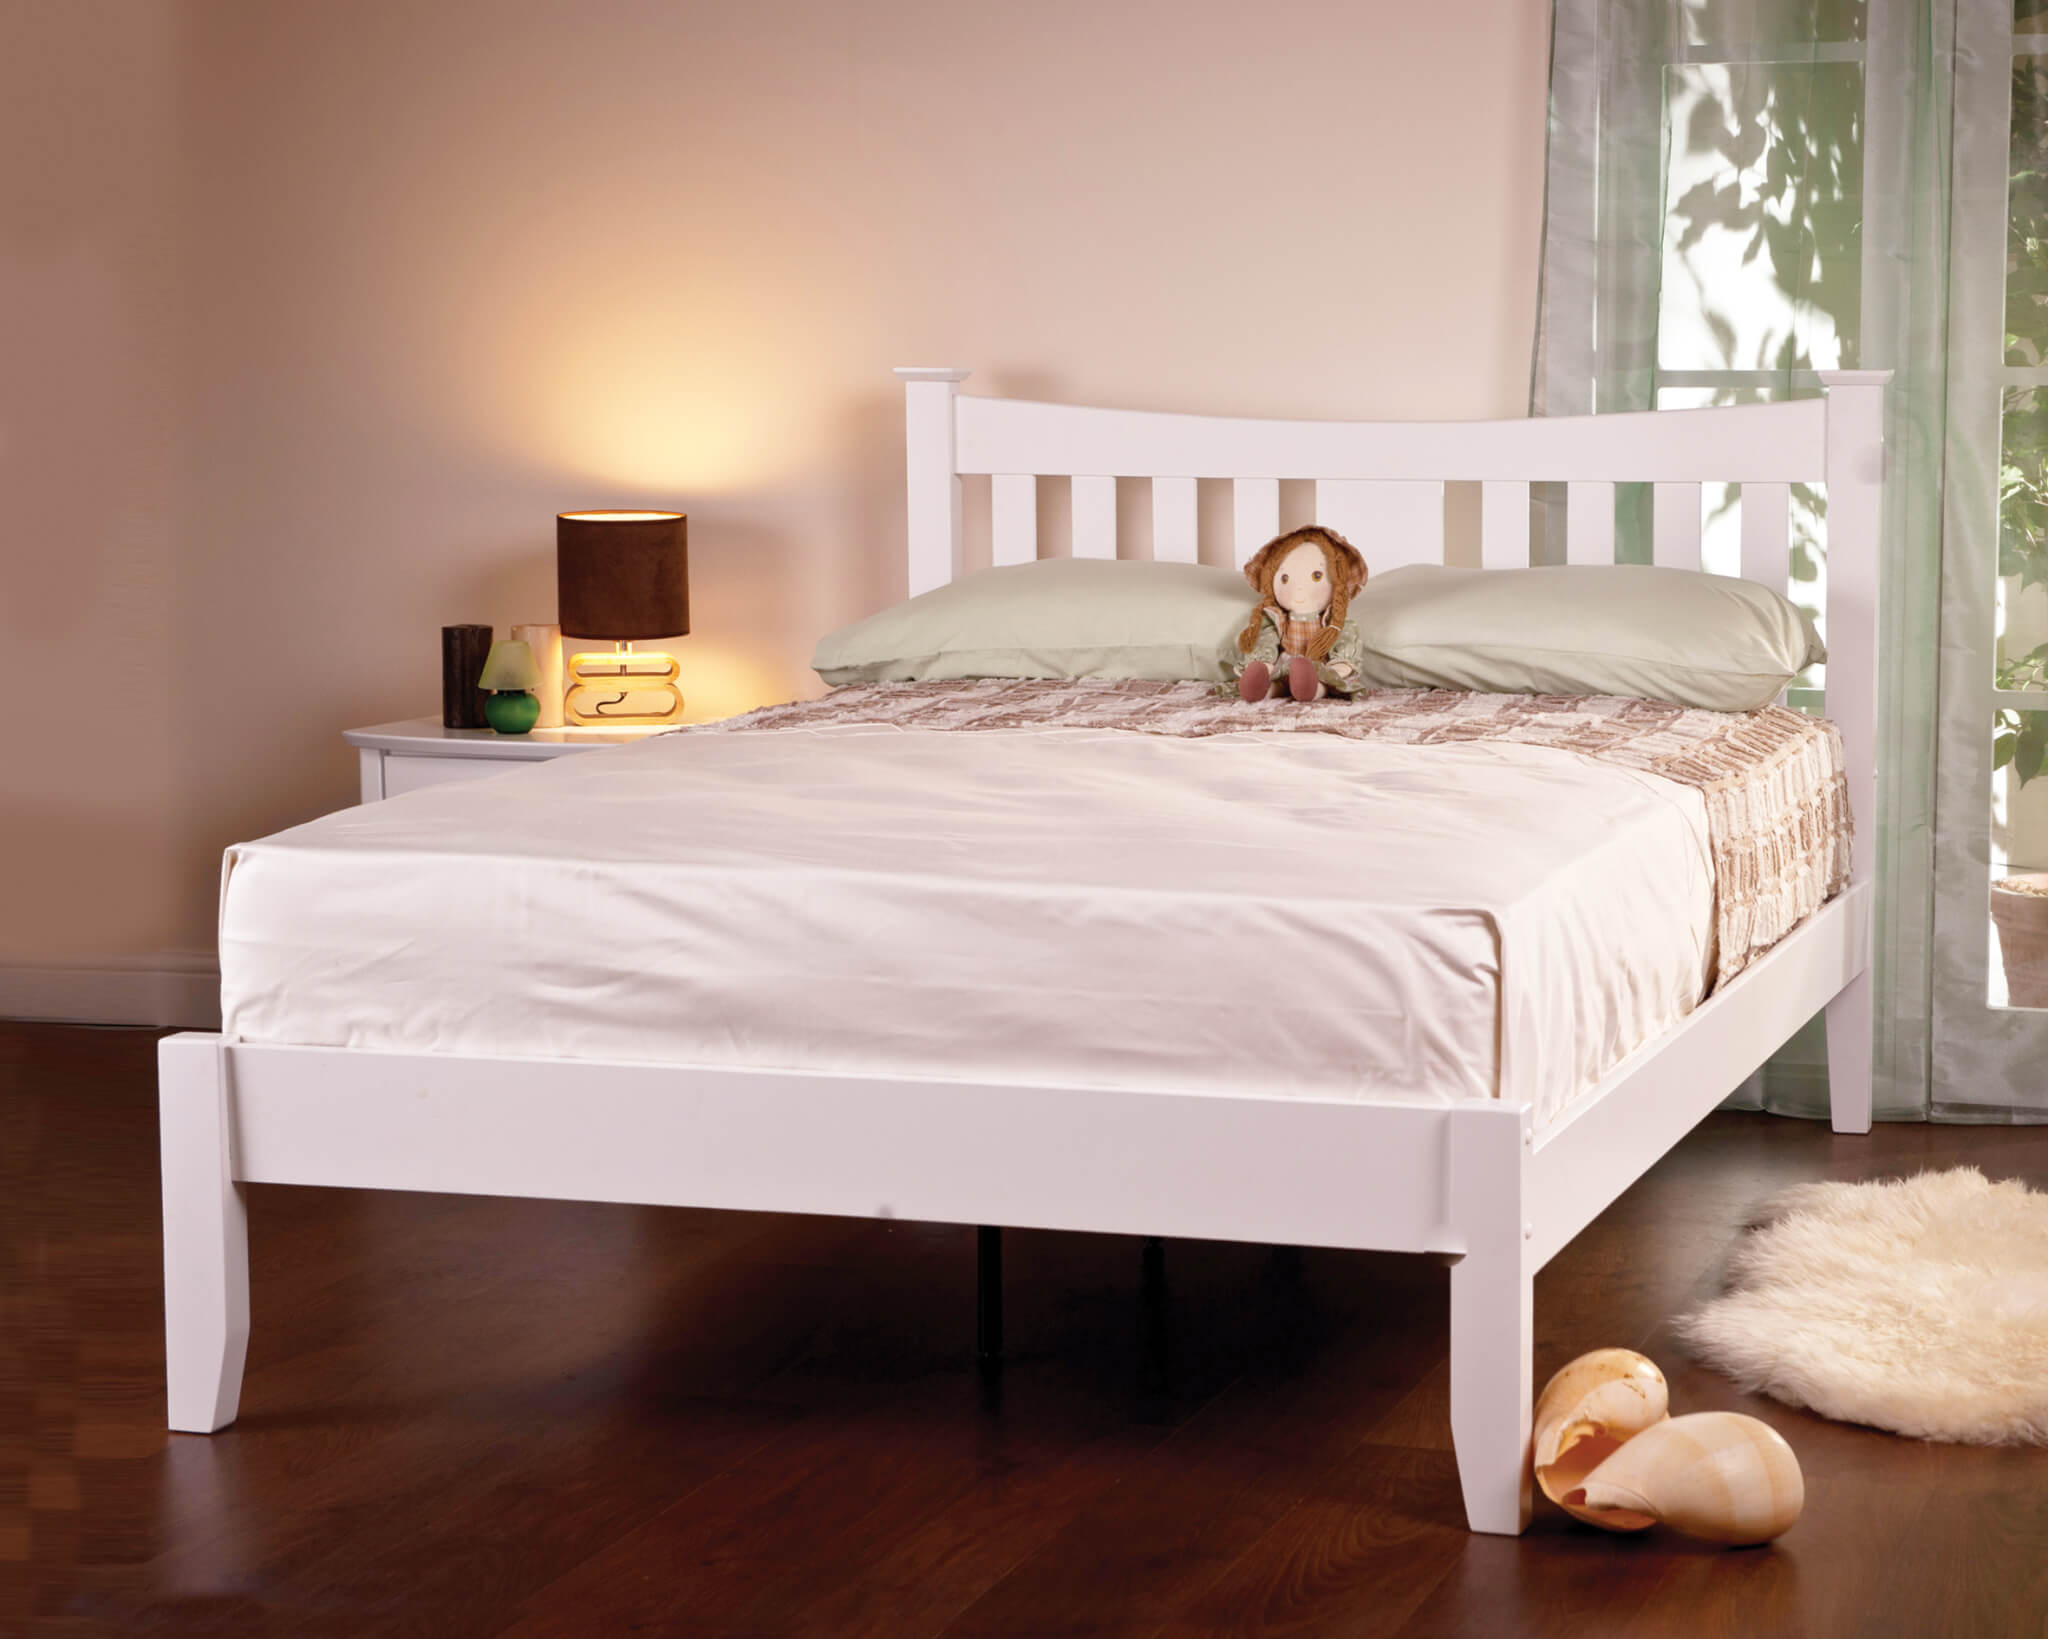 Bed Frames Home Kitchen Beds Frames Bases Wido White Wooden Double Bed Frame Noramina Ch